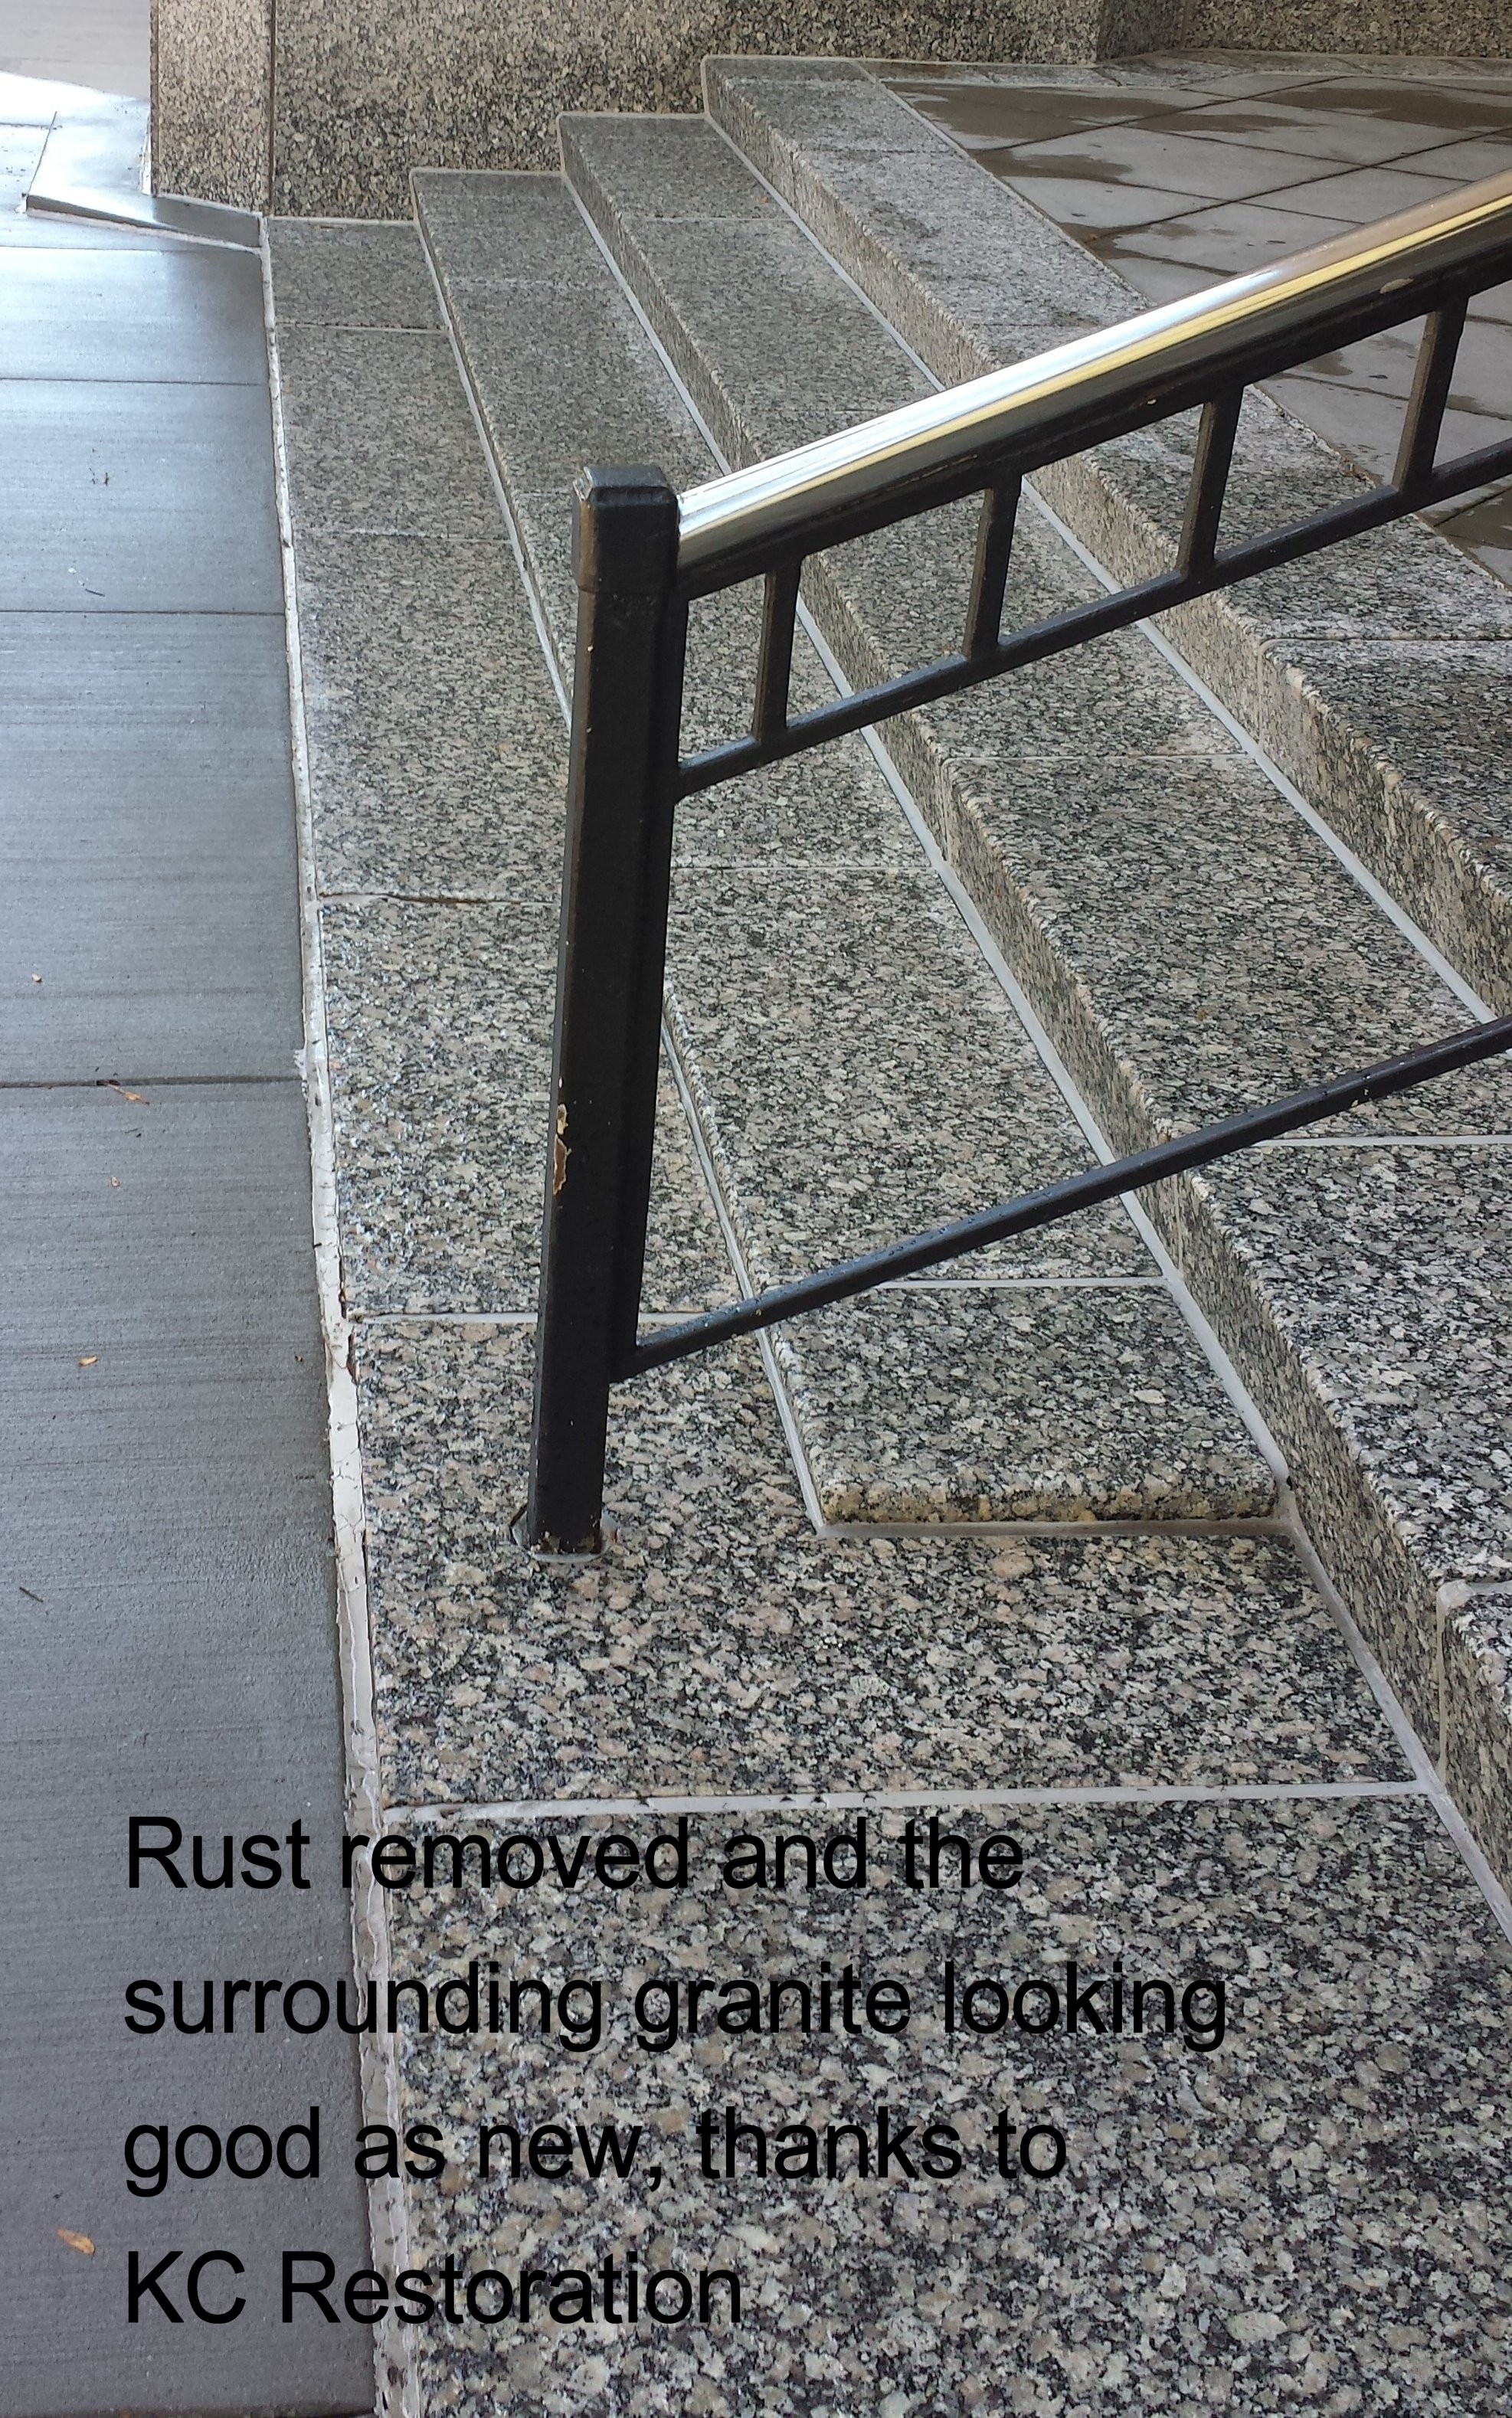 Rust removal by KC Restoration